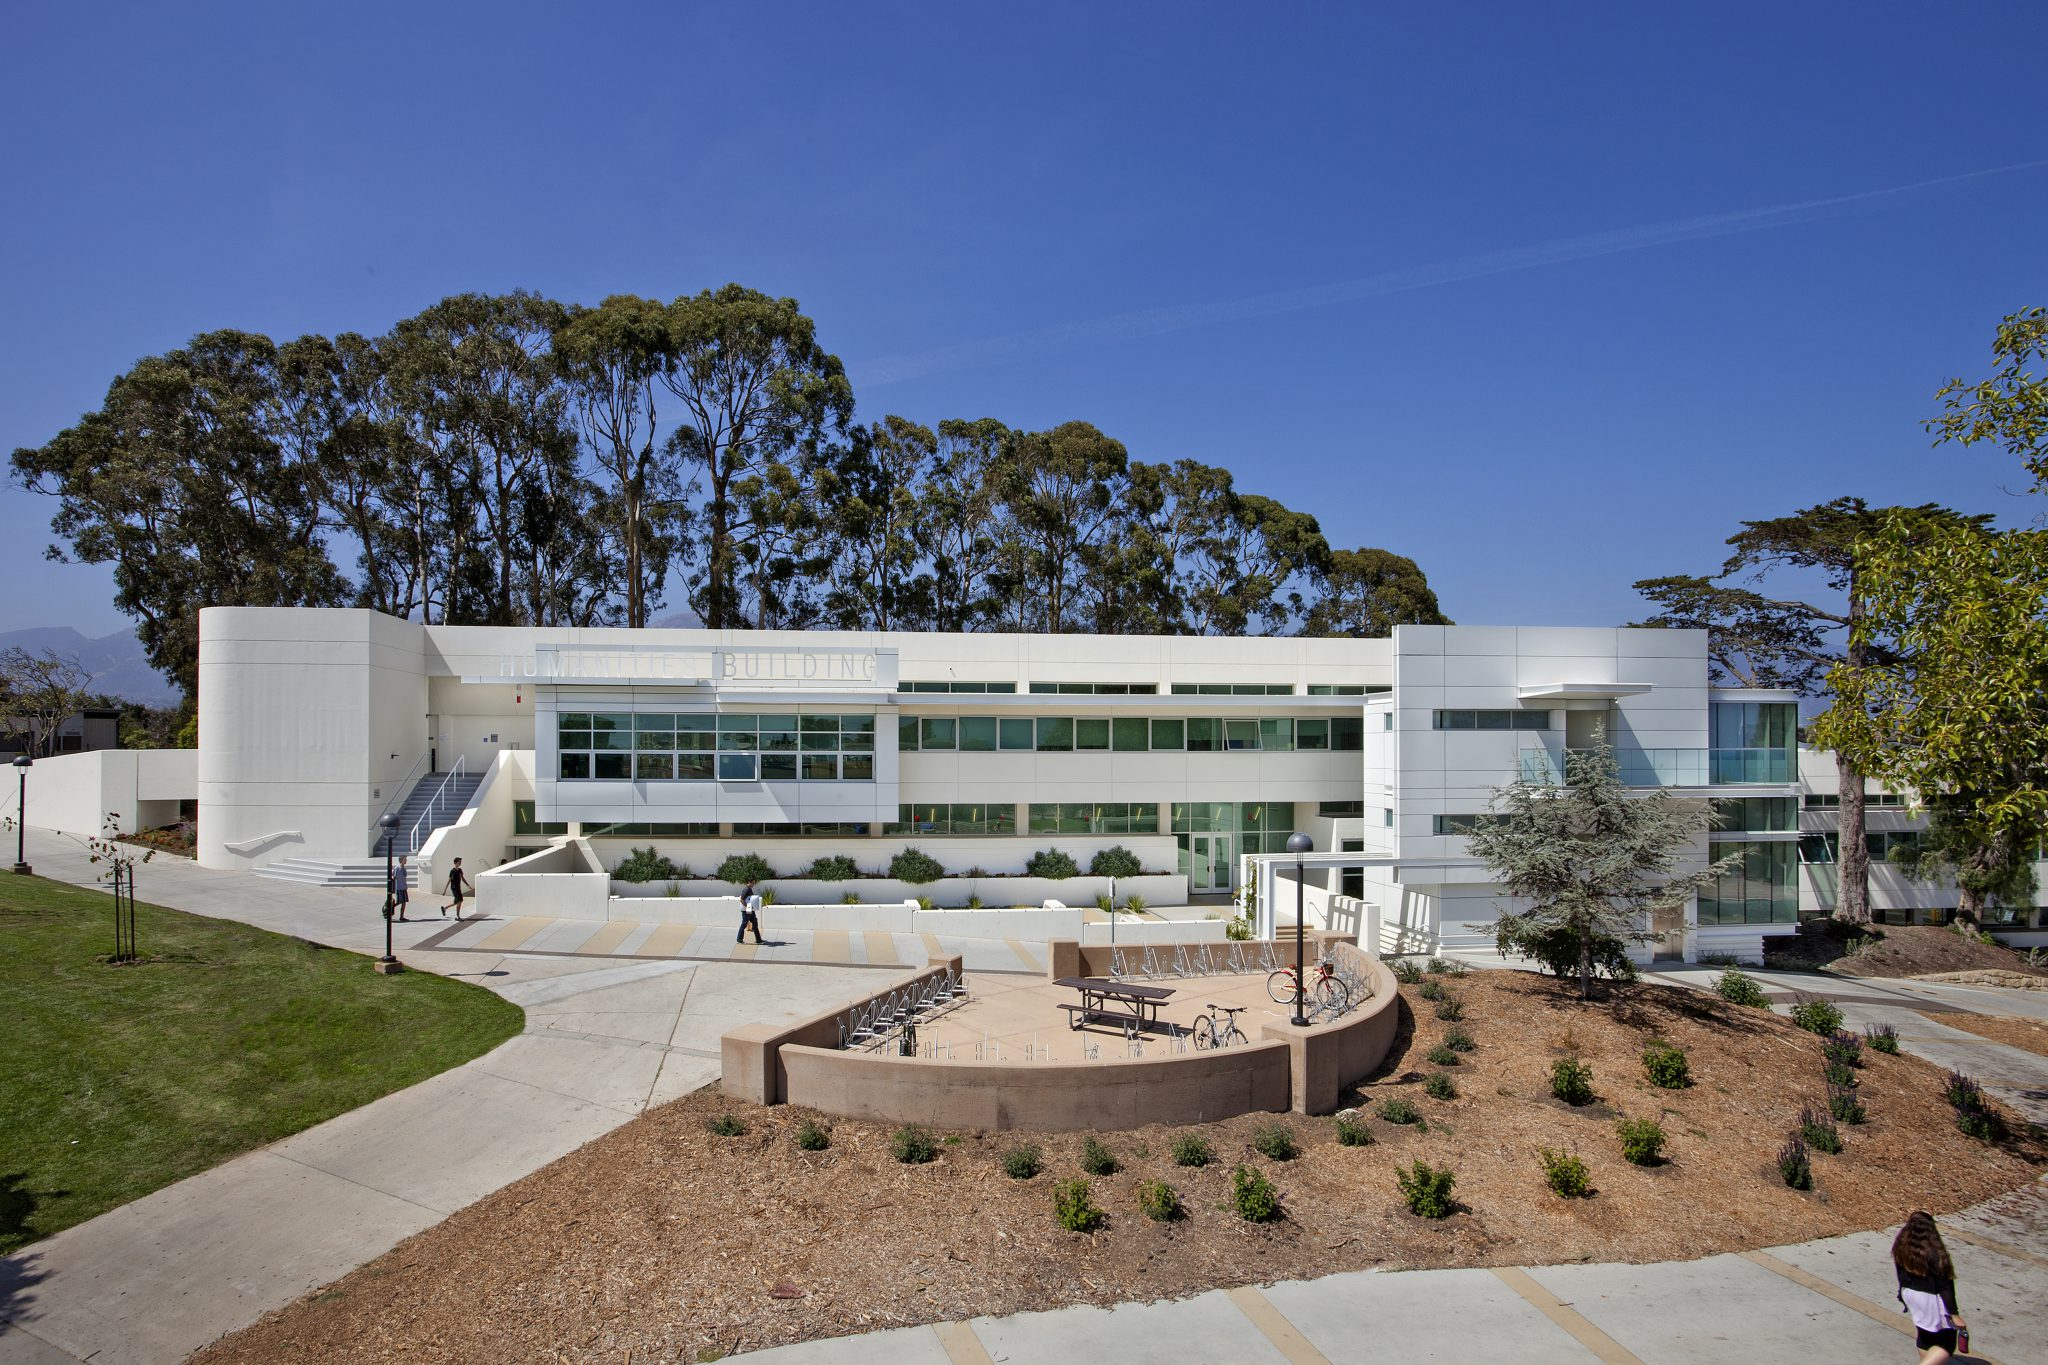 Santa Barbara City College Humanities Building Modernization